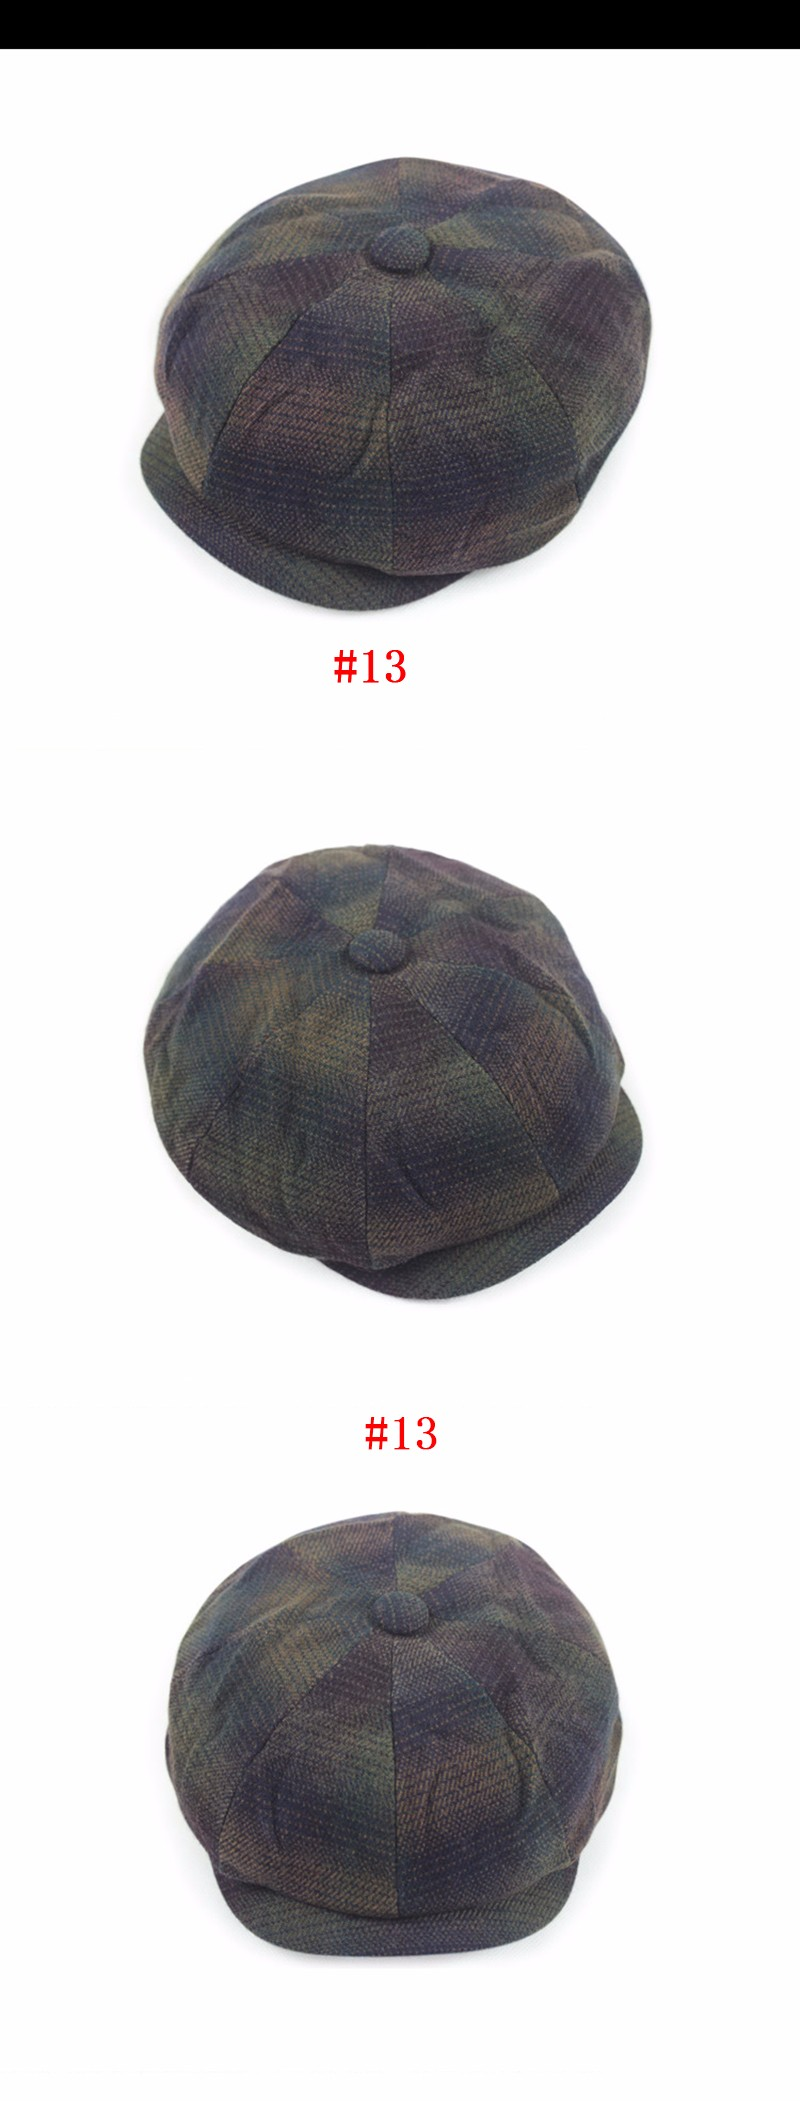 Compre David Beckham Fashion Gentleman Octagonal Cap Newsboy ... 4db2a28eea2